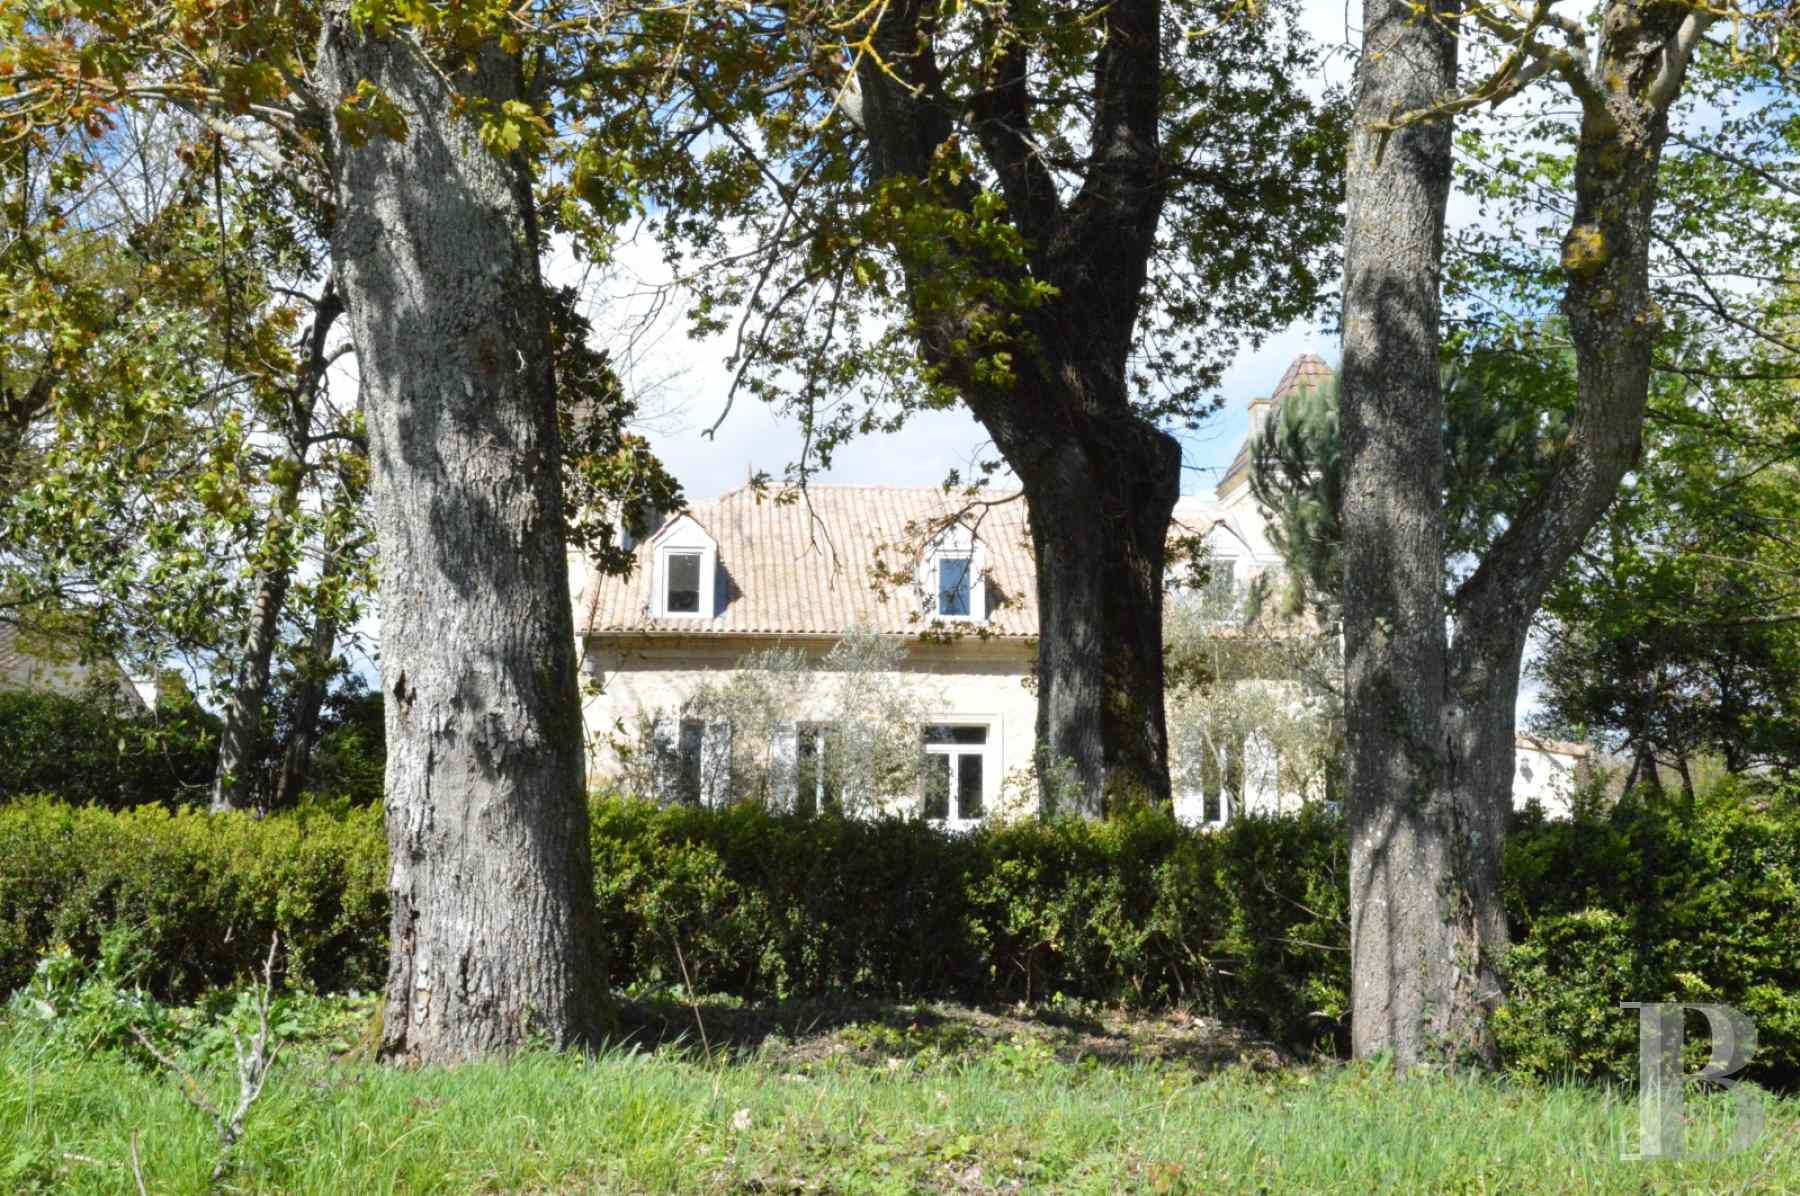 property for sale France aquitaine blaye coast - 8 zoom